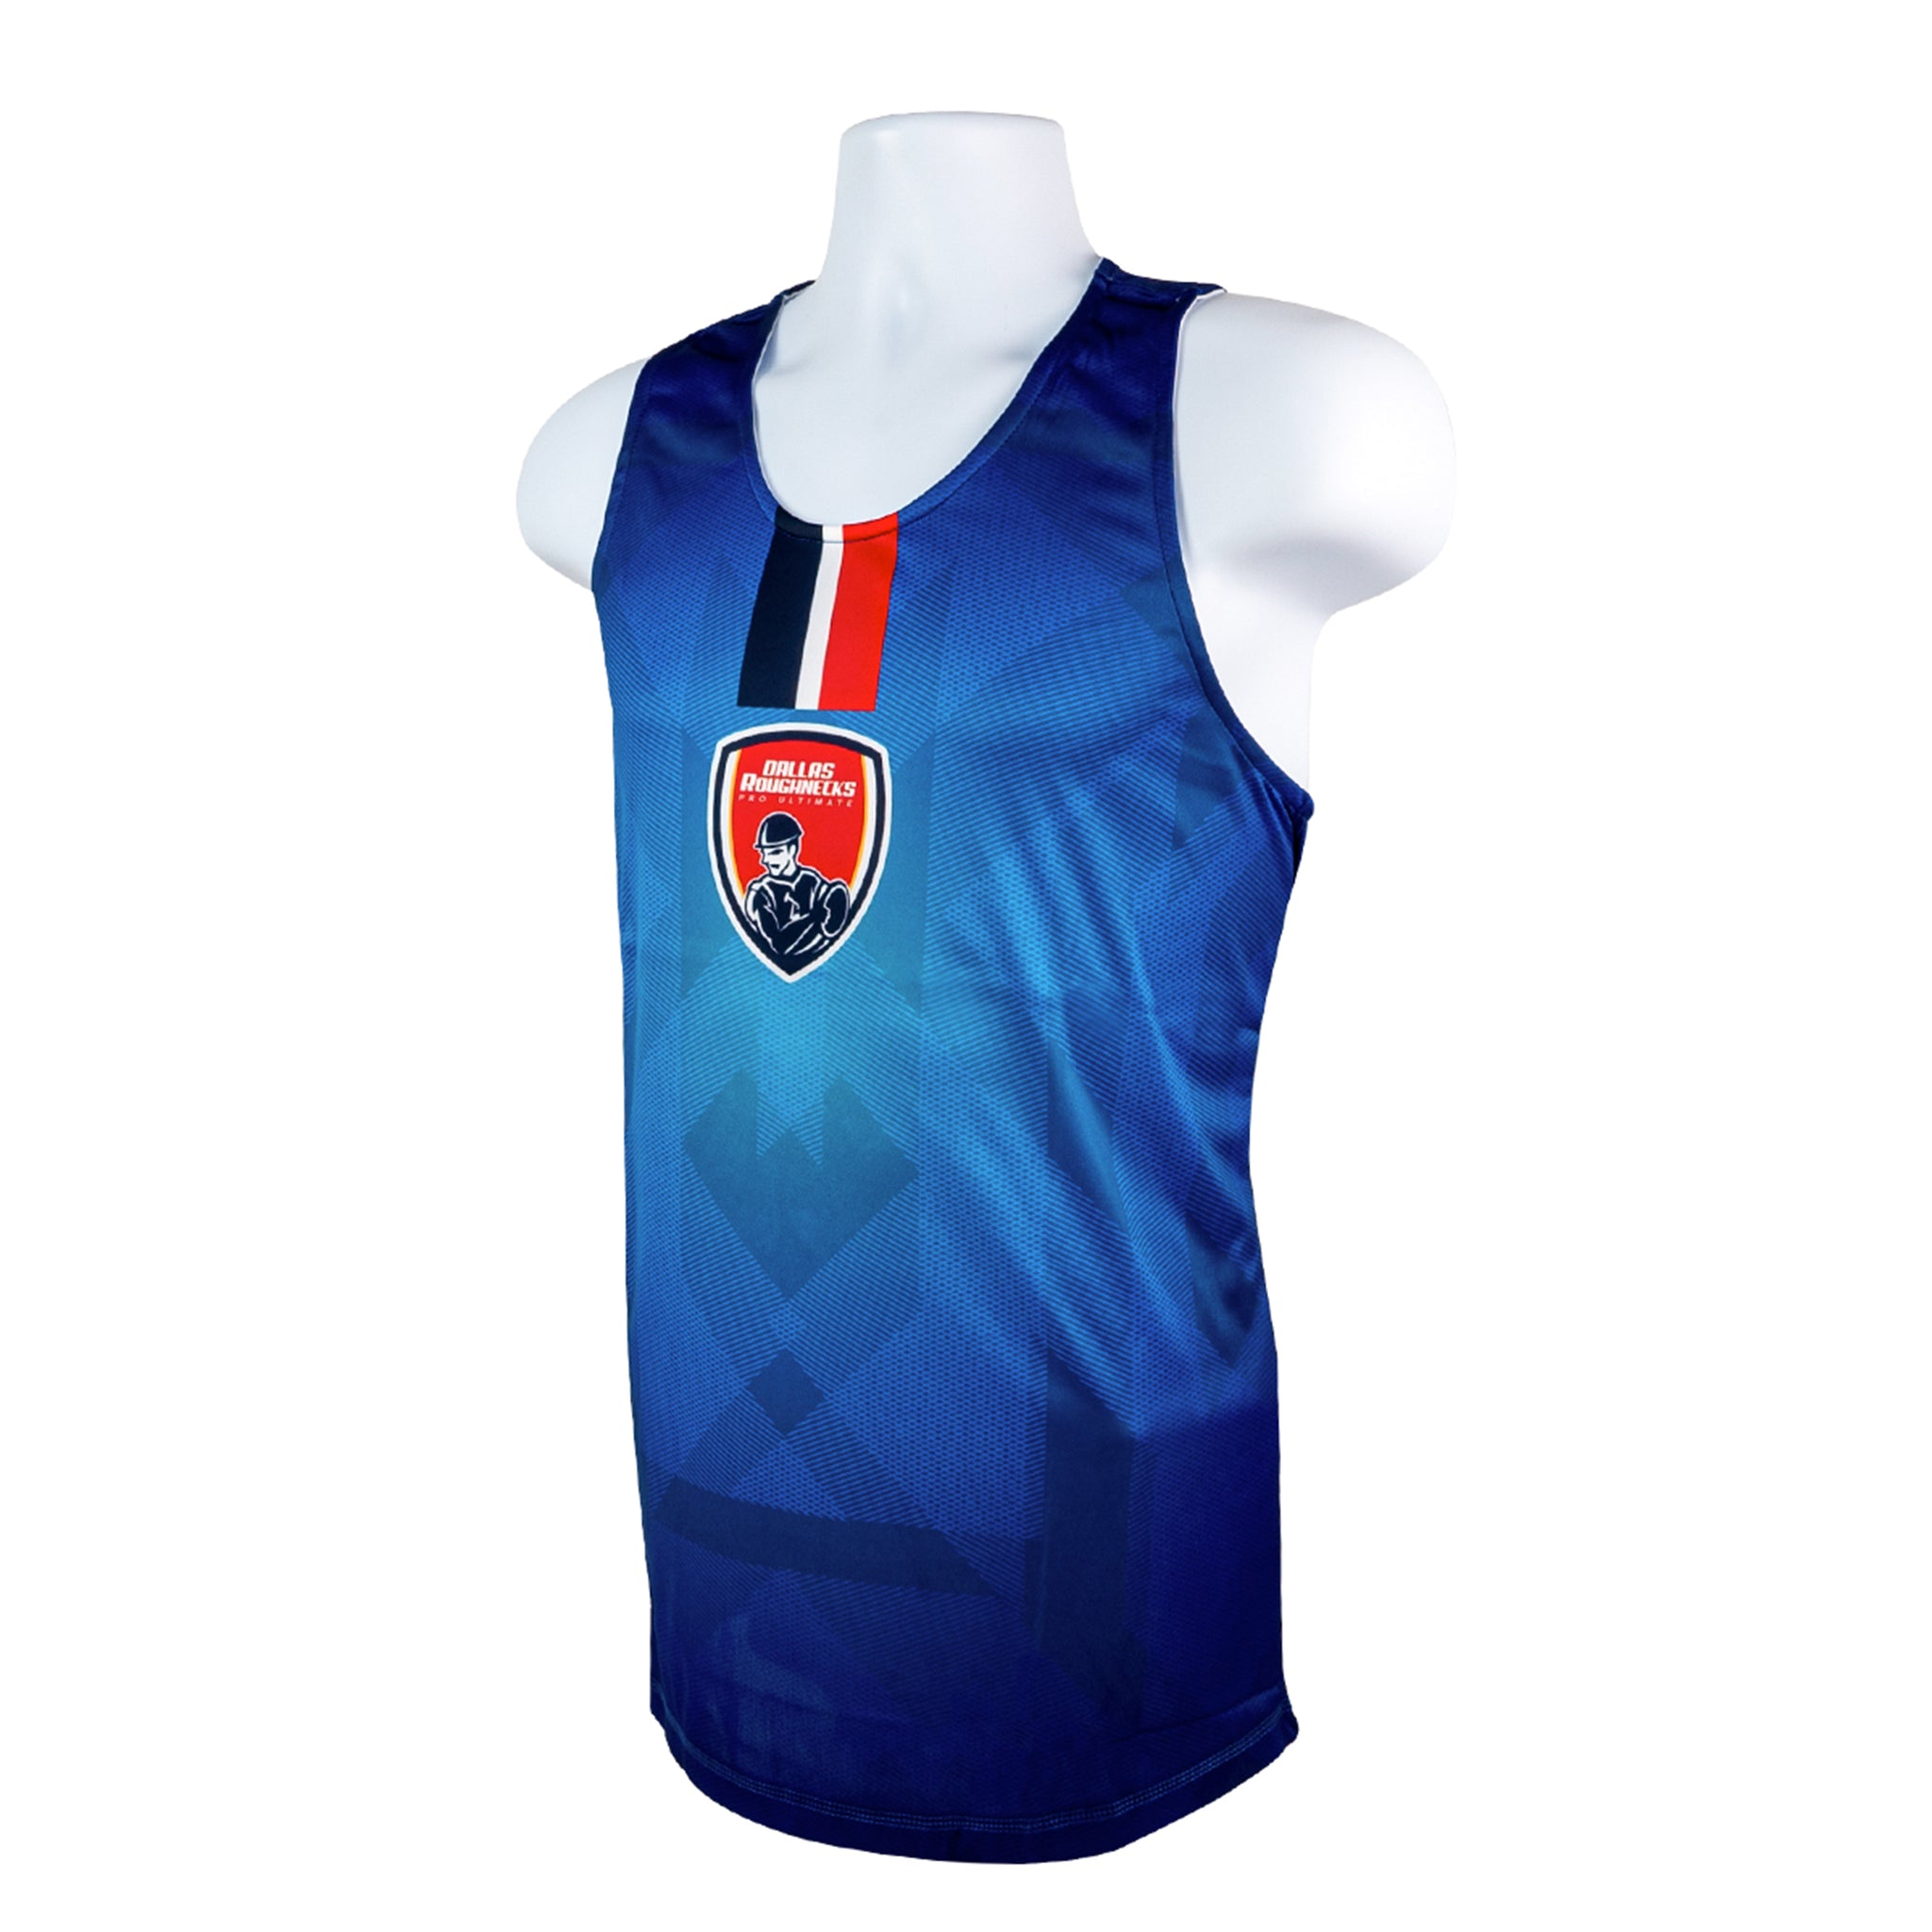 Roughnecks Tank Top - Blue